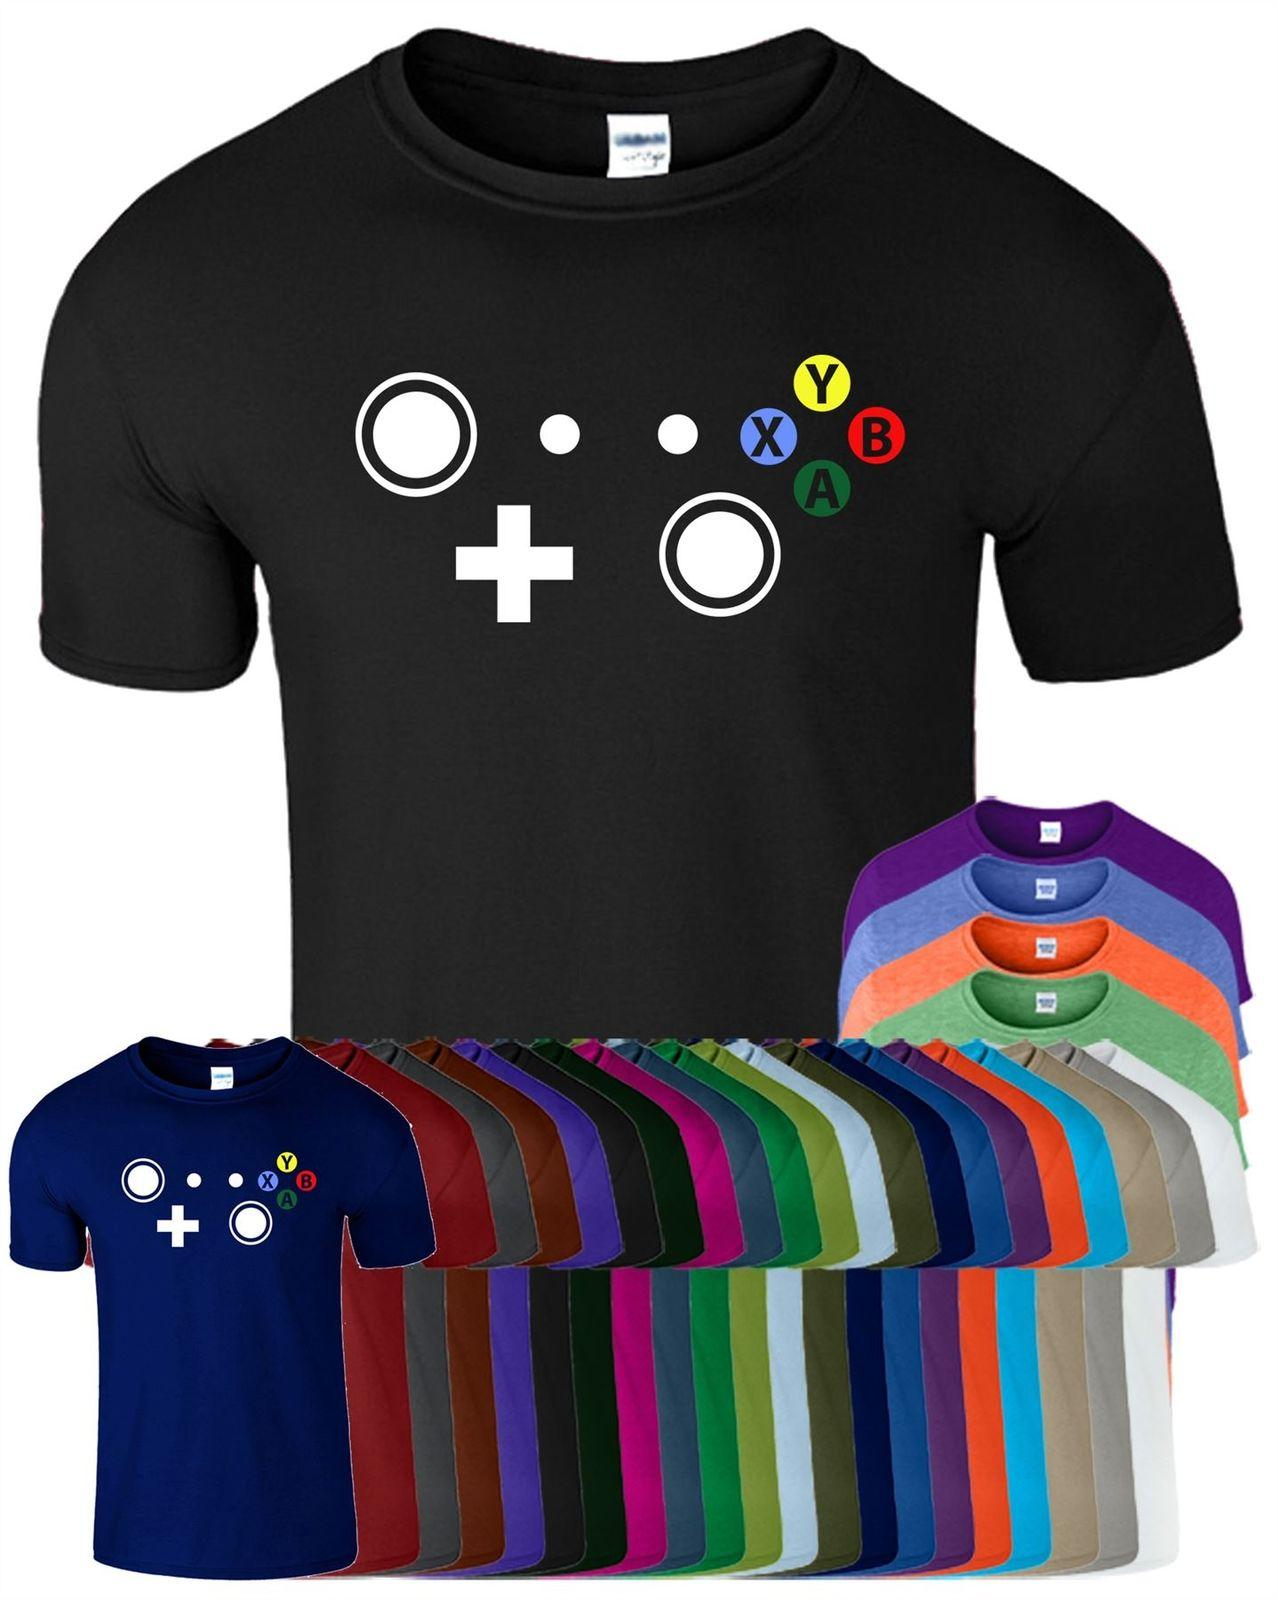 86a65a9dae06 Controller Xbox Mens Womens T Shirt Joypad Buttons X Y B A Video Gaming  TShirt Cool Casual Pride White T Shirts With Designs Cloth T Shirt From ...